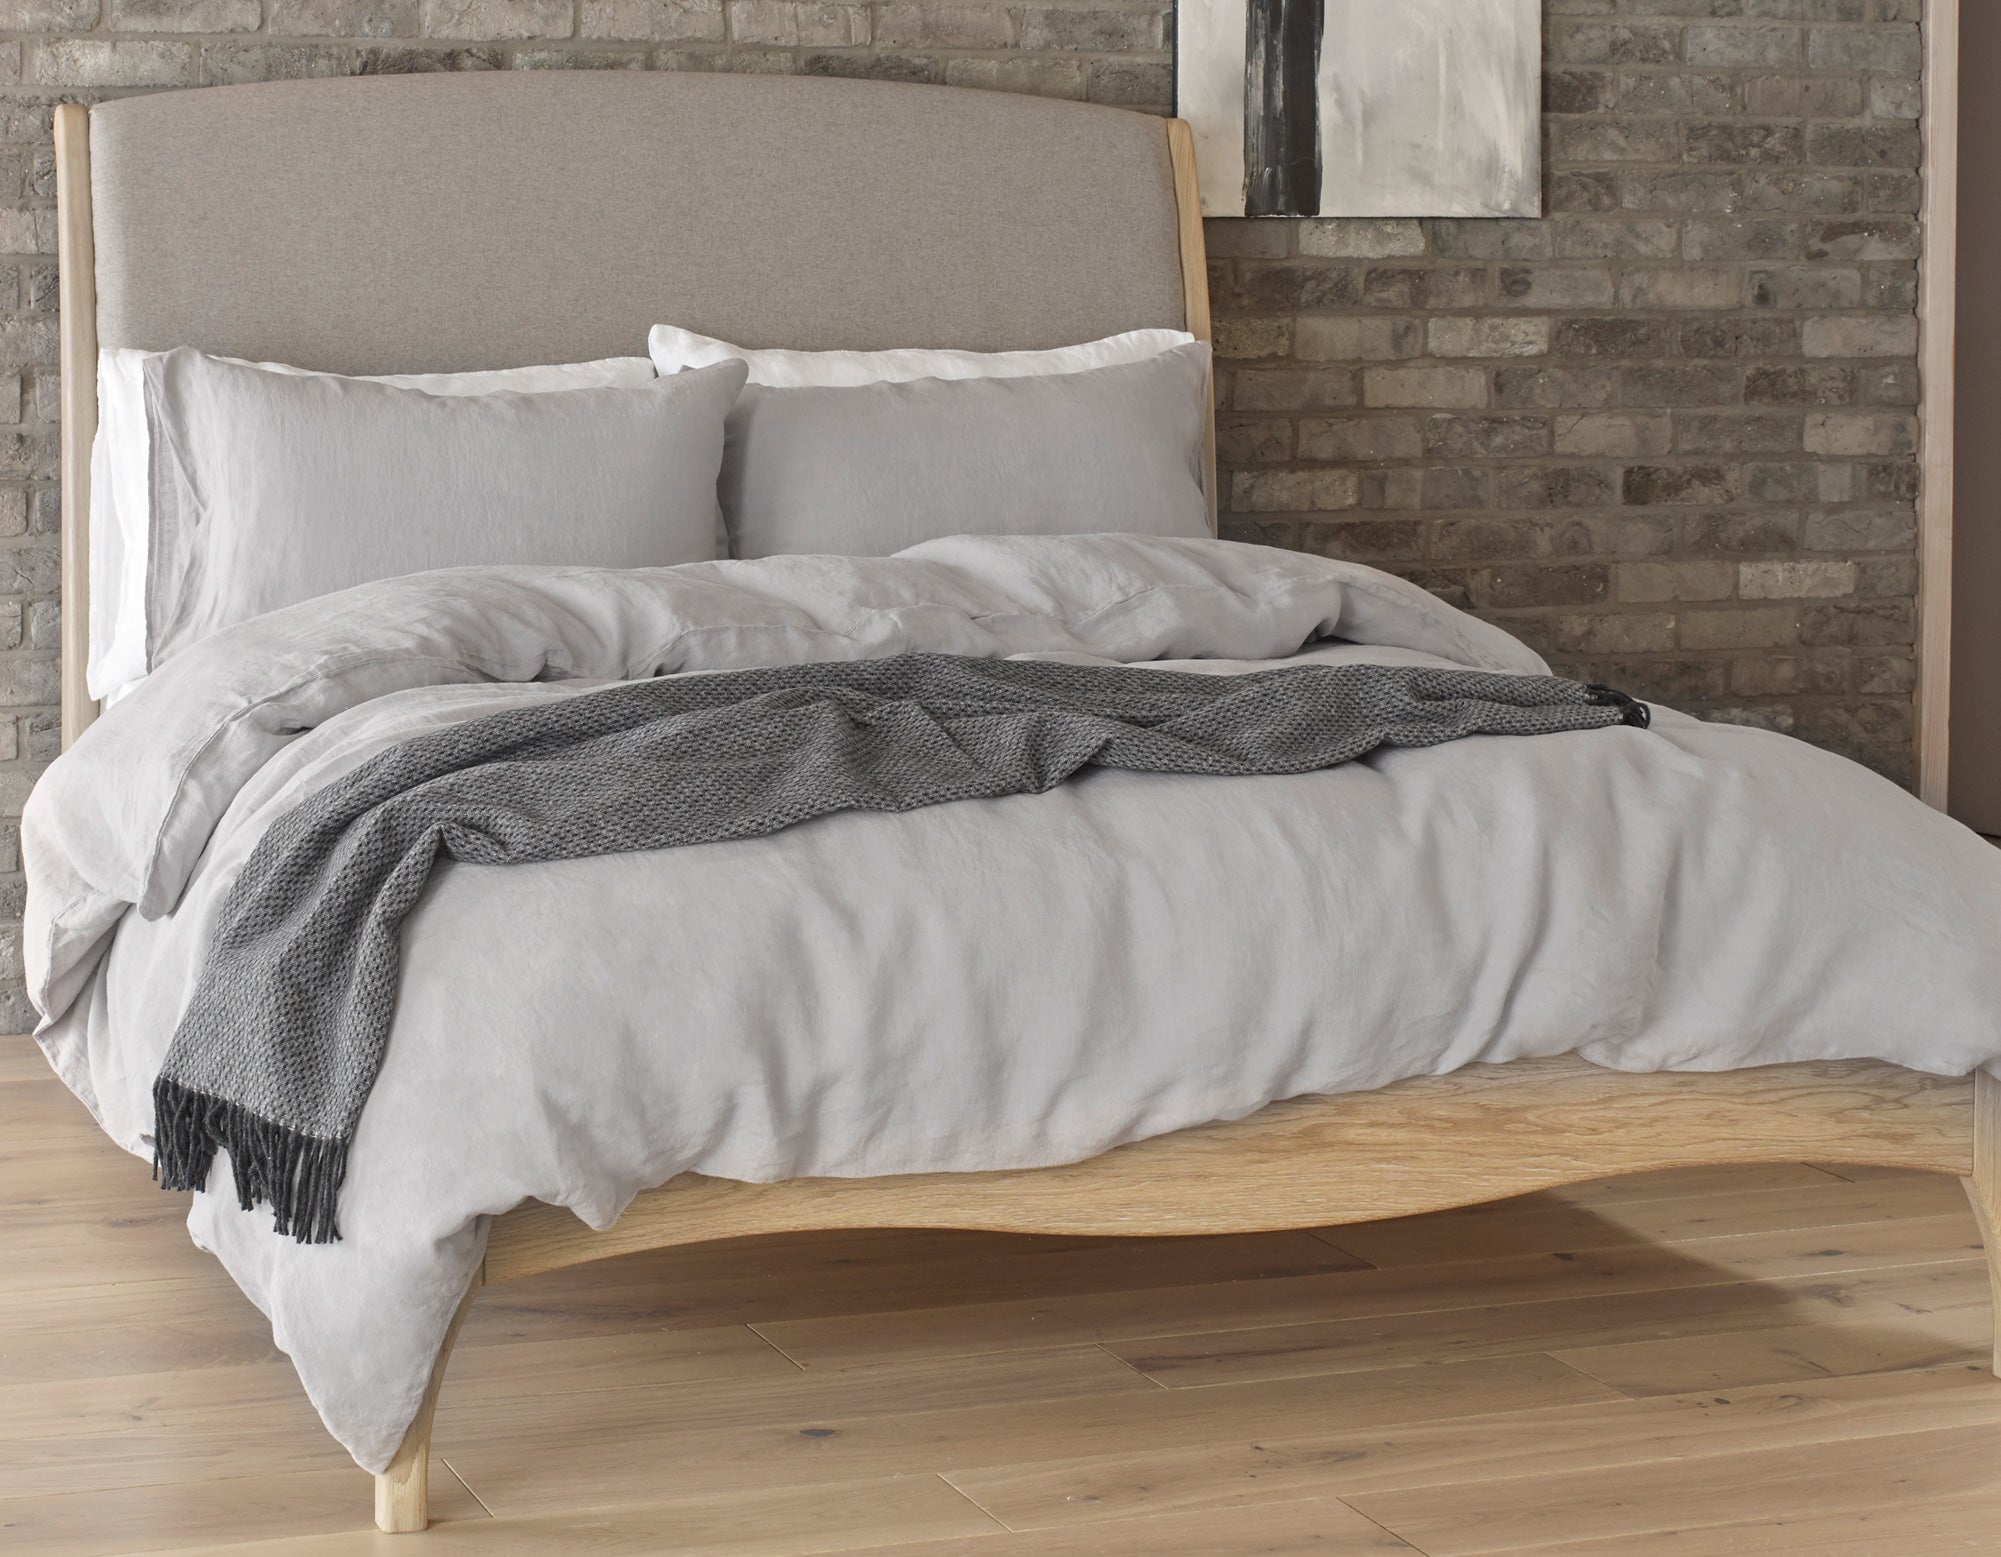 Linen Bedding King Size In Calm Grey Scooms